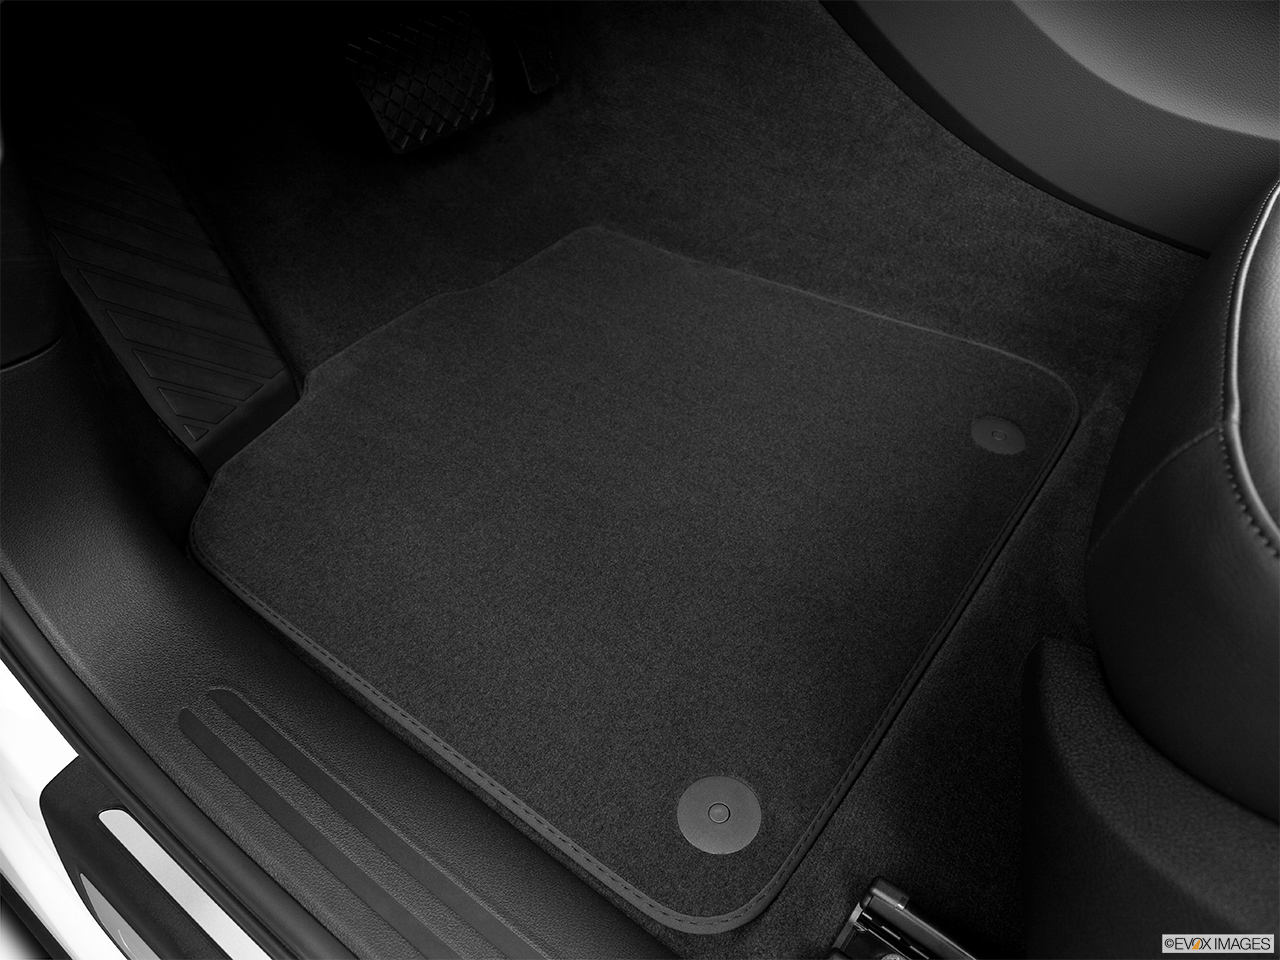 2014 Audi Q5 Hybrid 2.0 TFSI Prestige Driver's floor mat and pedals. Mid-seat level from outside looking in.